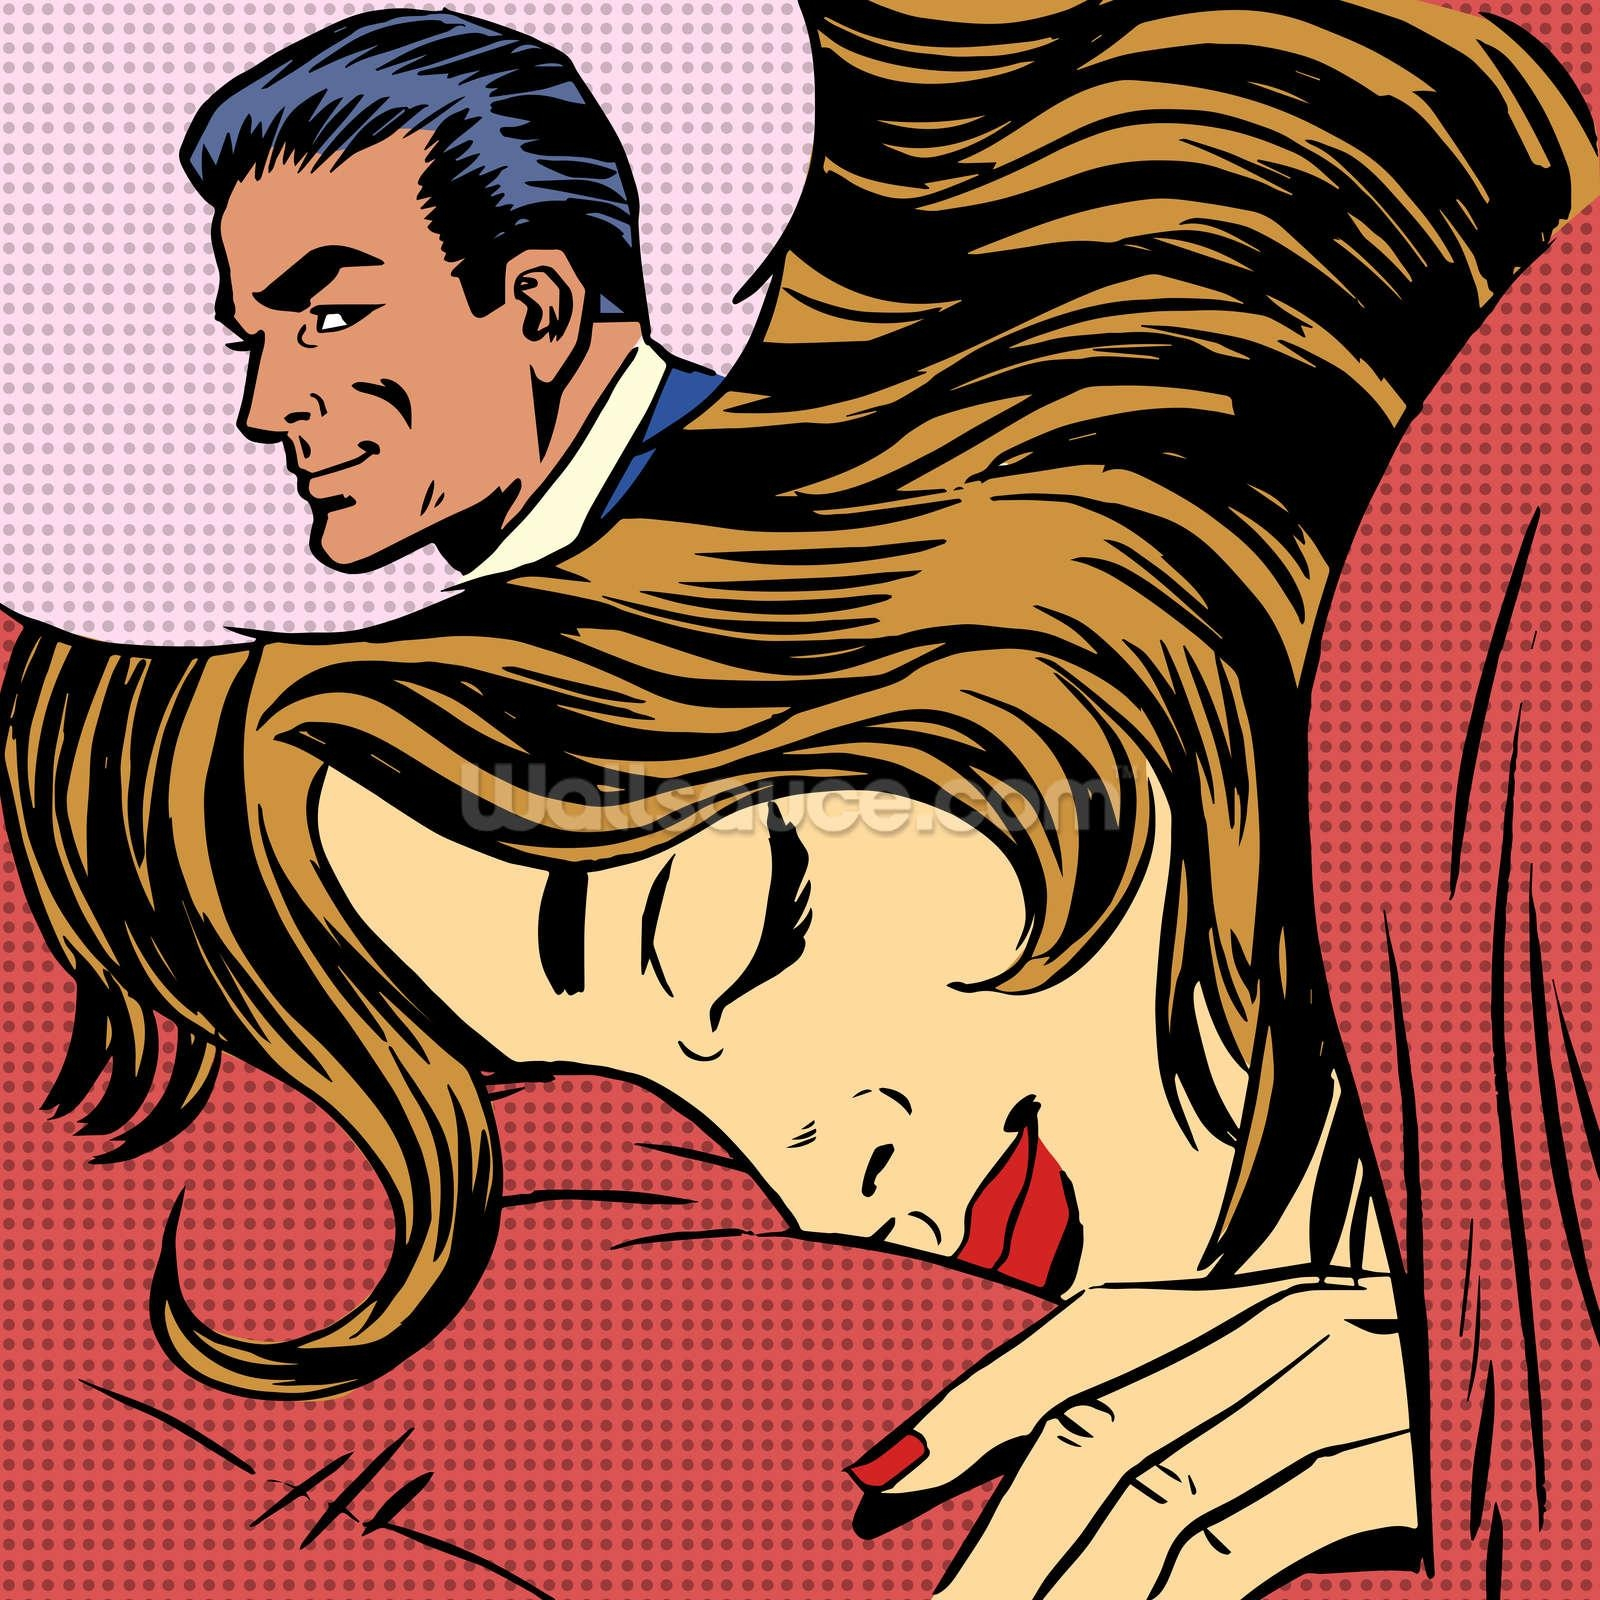 Pop Art Dream Romance Wallpaper Wall Mural | Wallsauce Australia For Pop Art Wallpaper For Walls (Image 10 of 20)